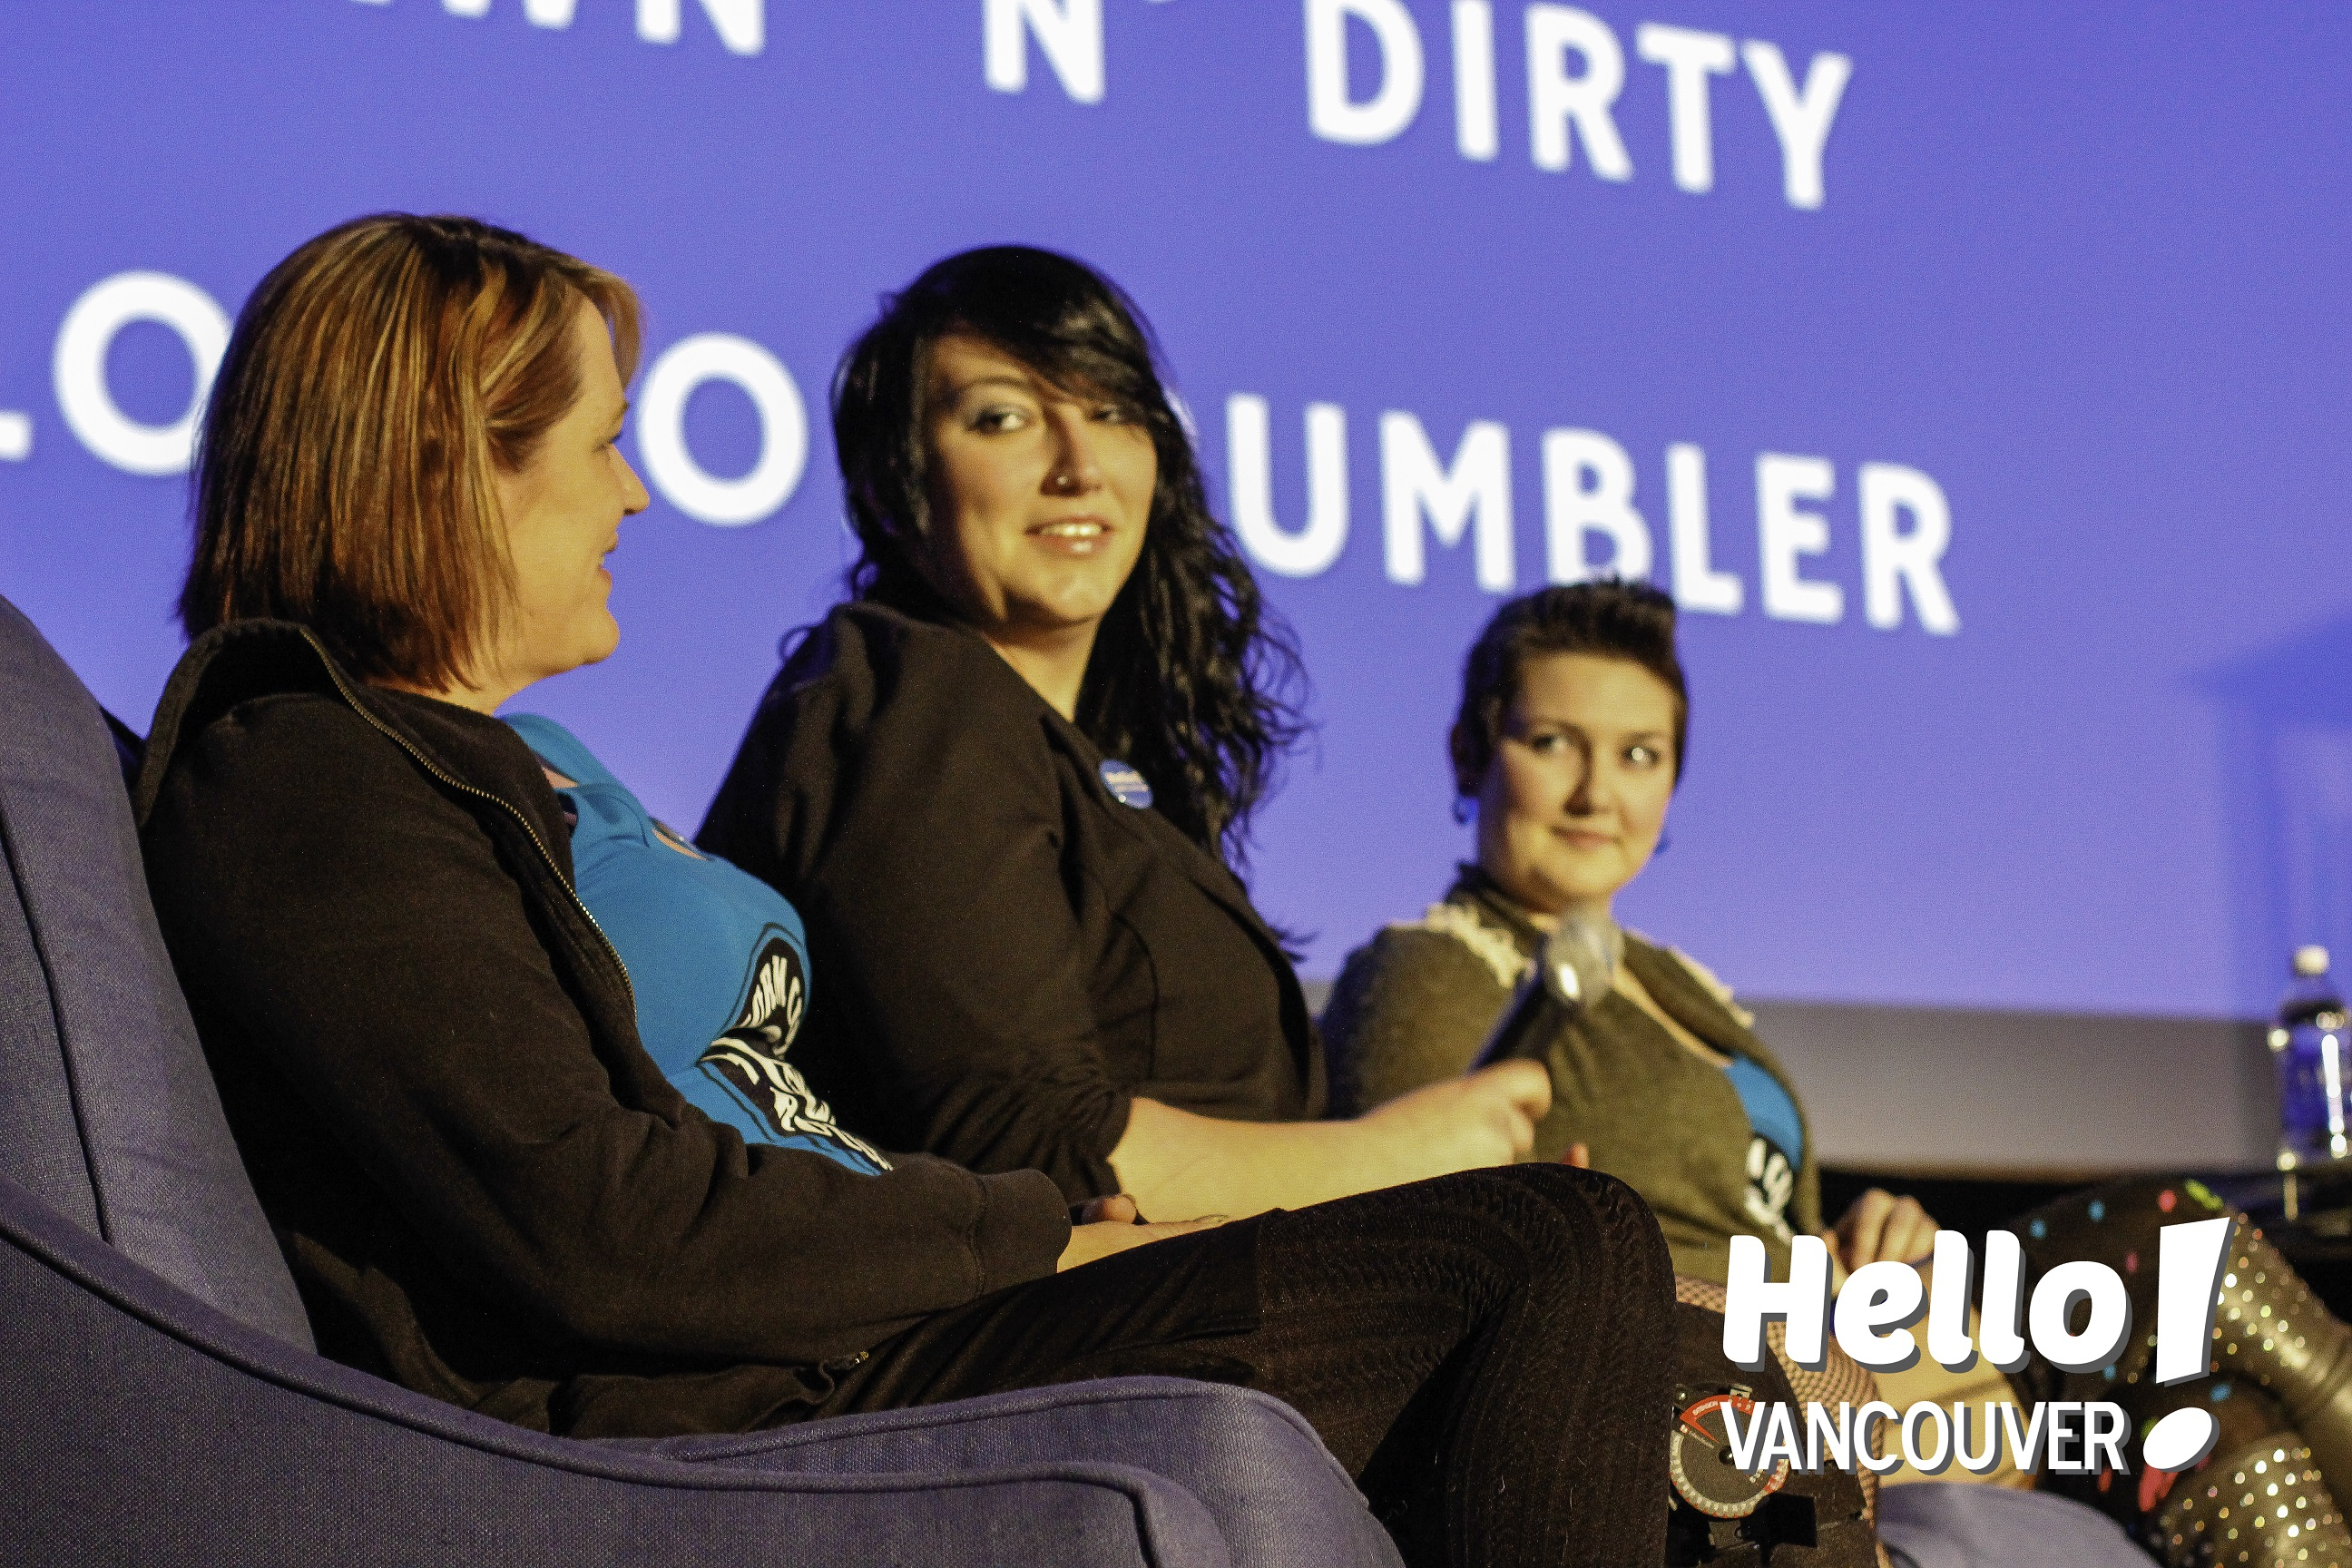 Hello Vancouver! Storm City Roller Girls